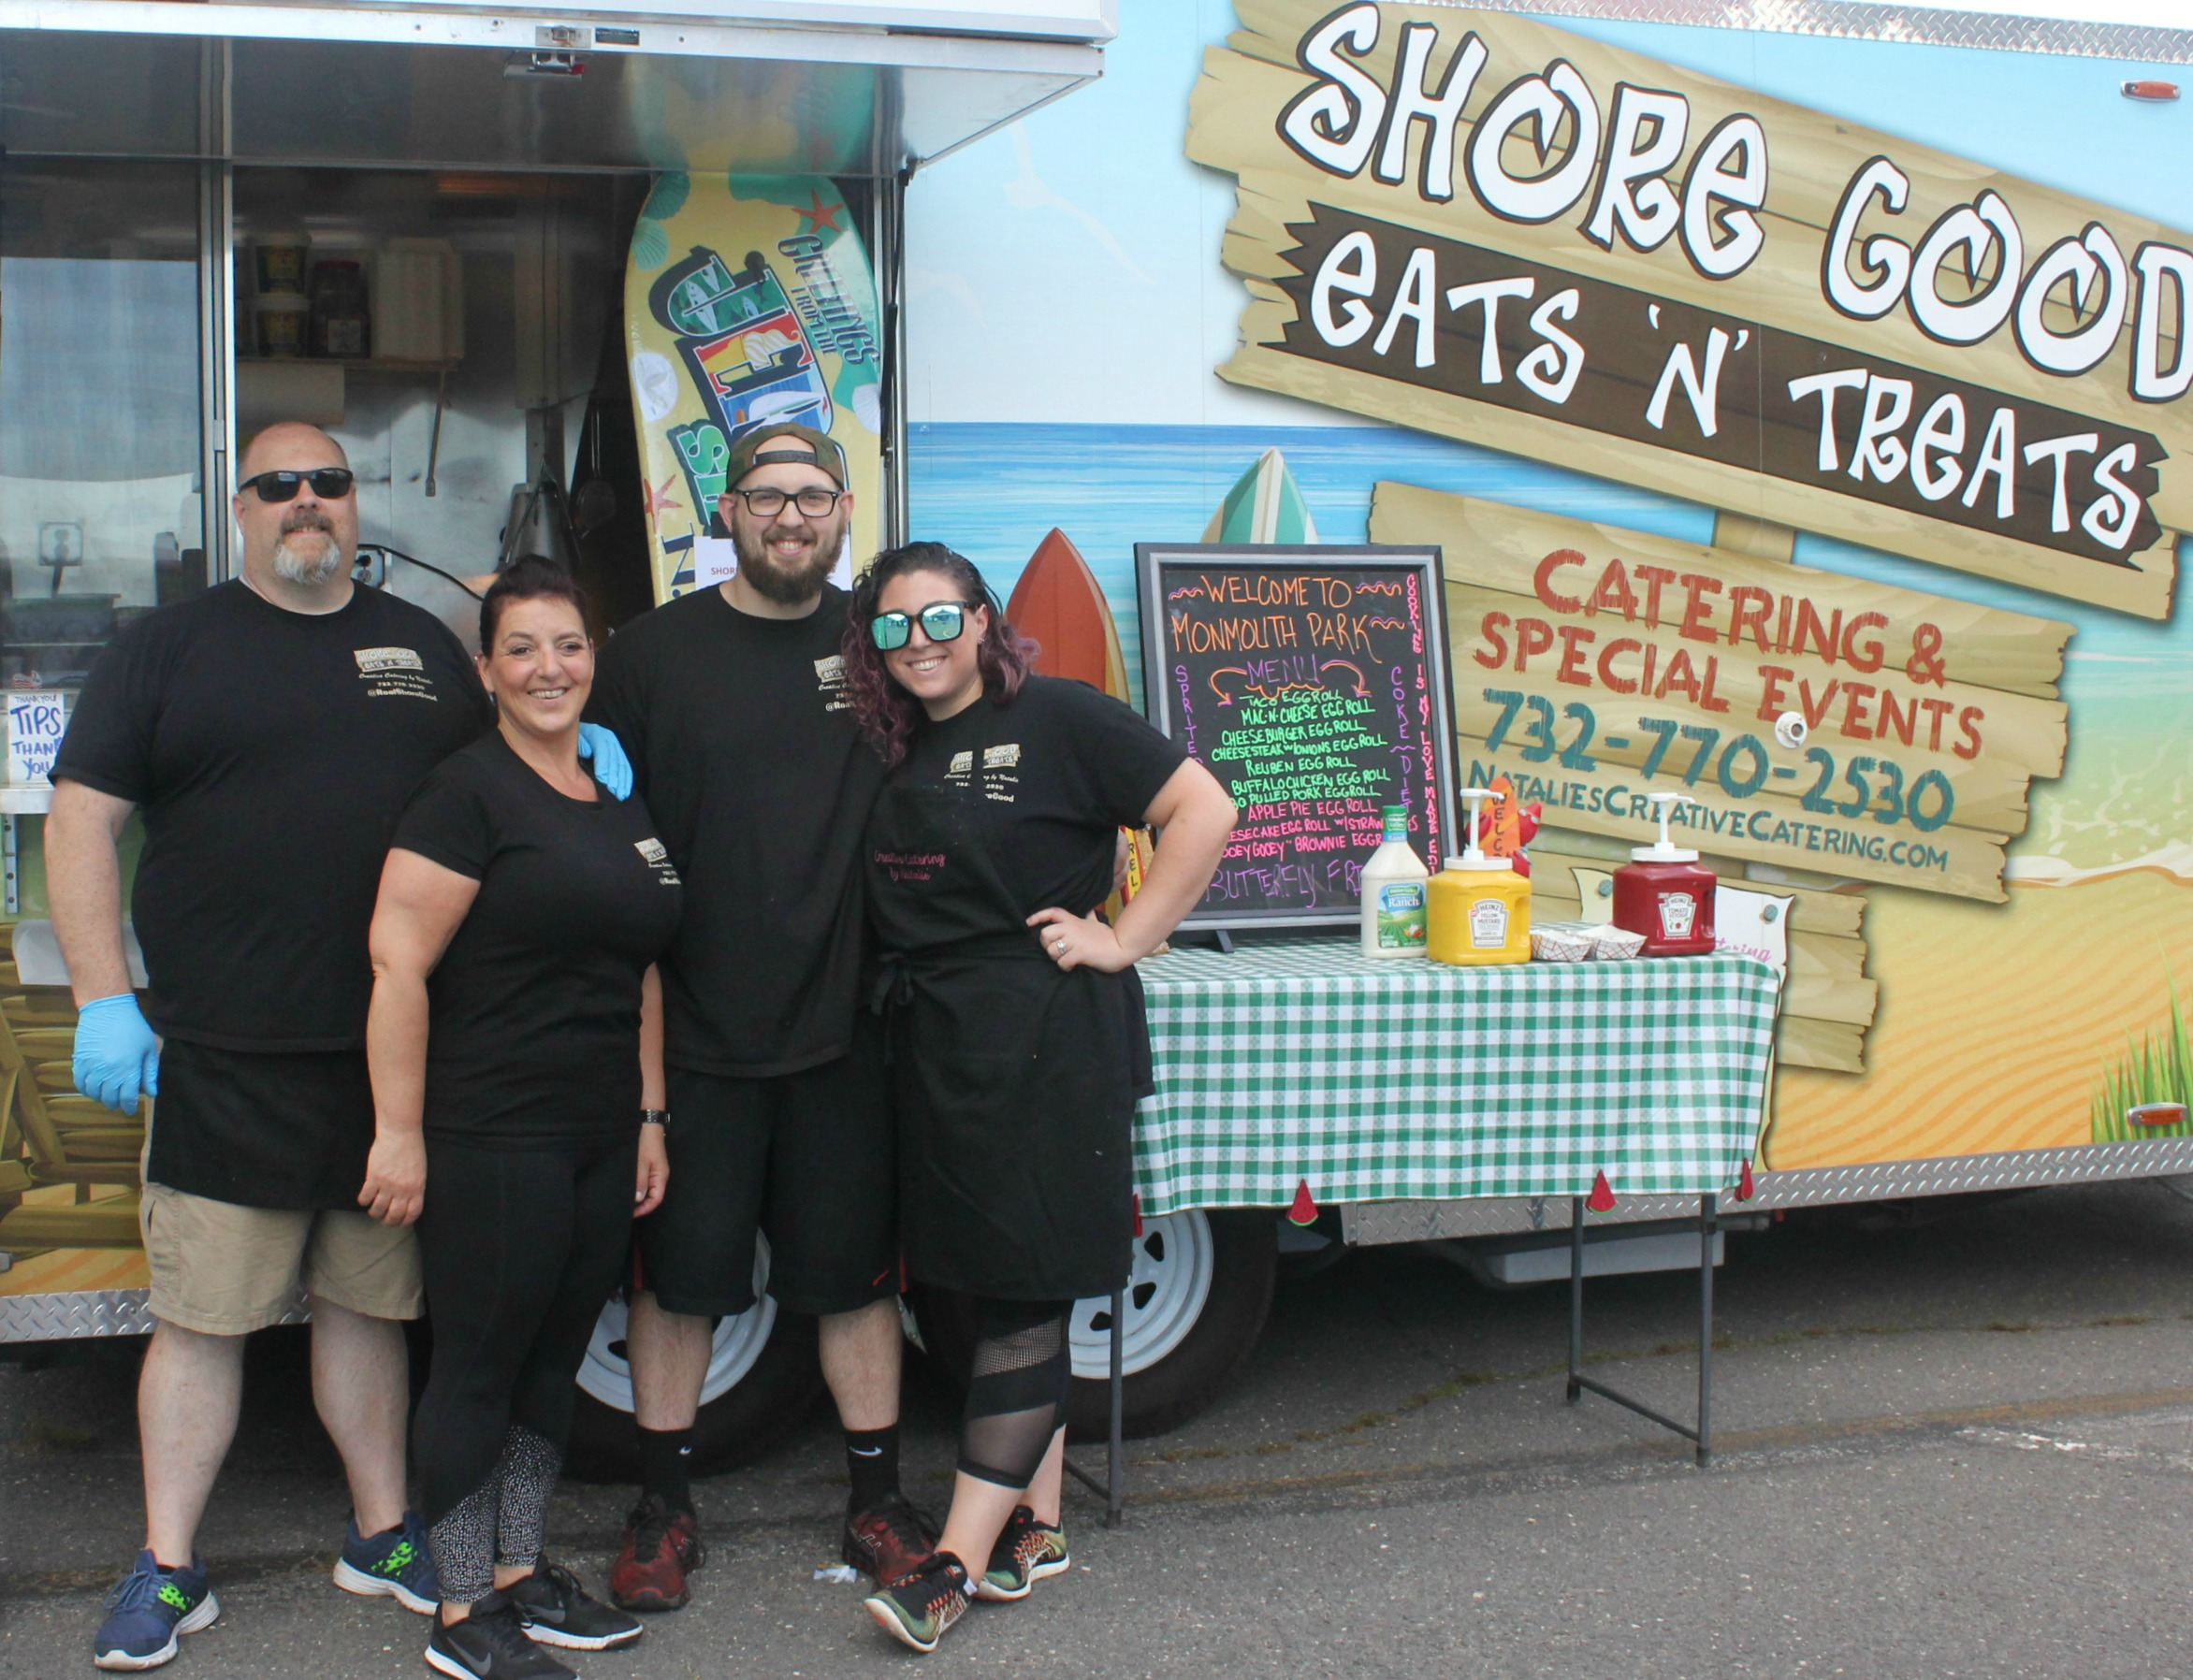 Food Truck Stories with Shore Good Eats N Treats